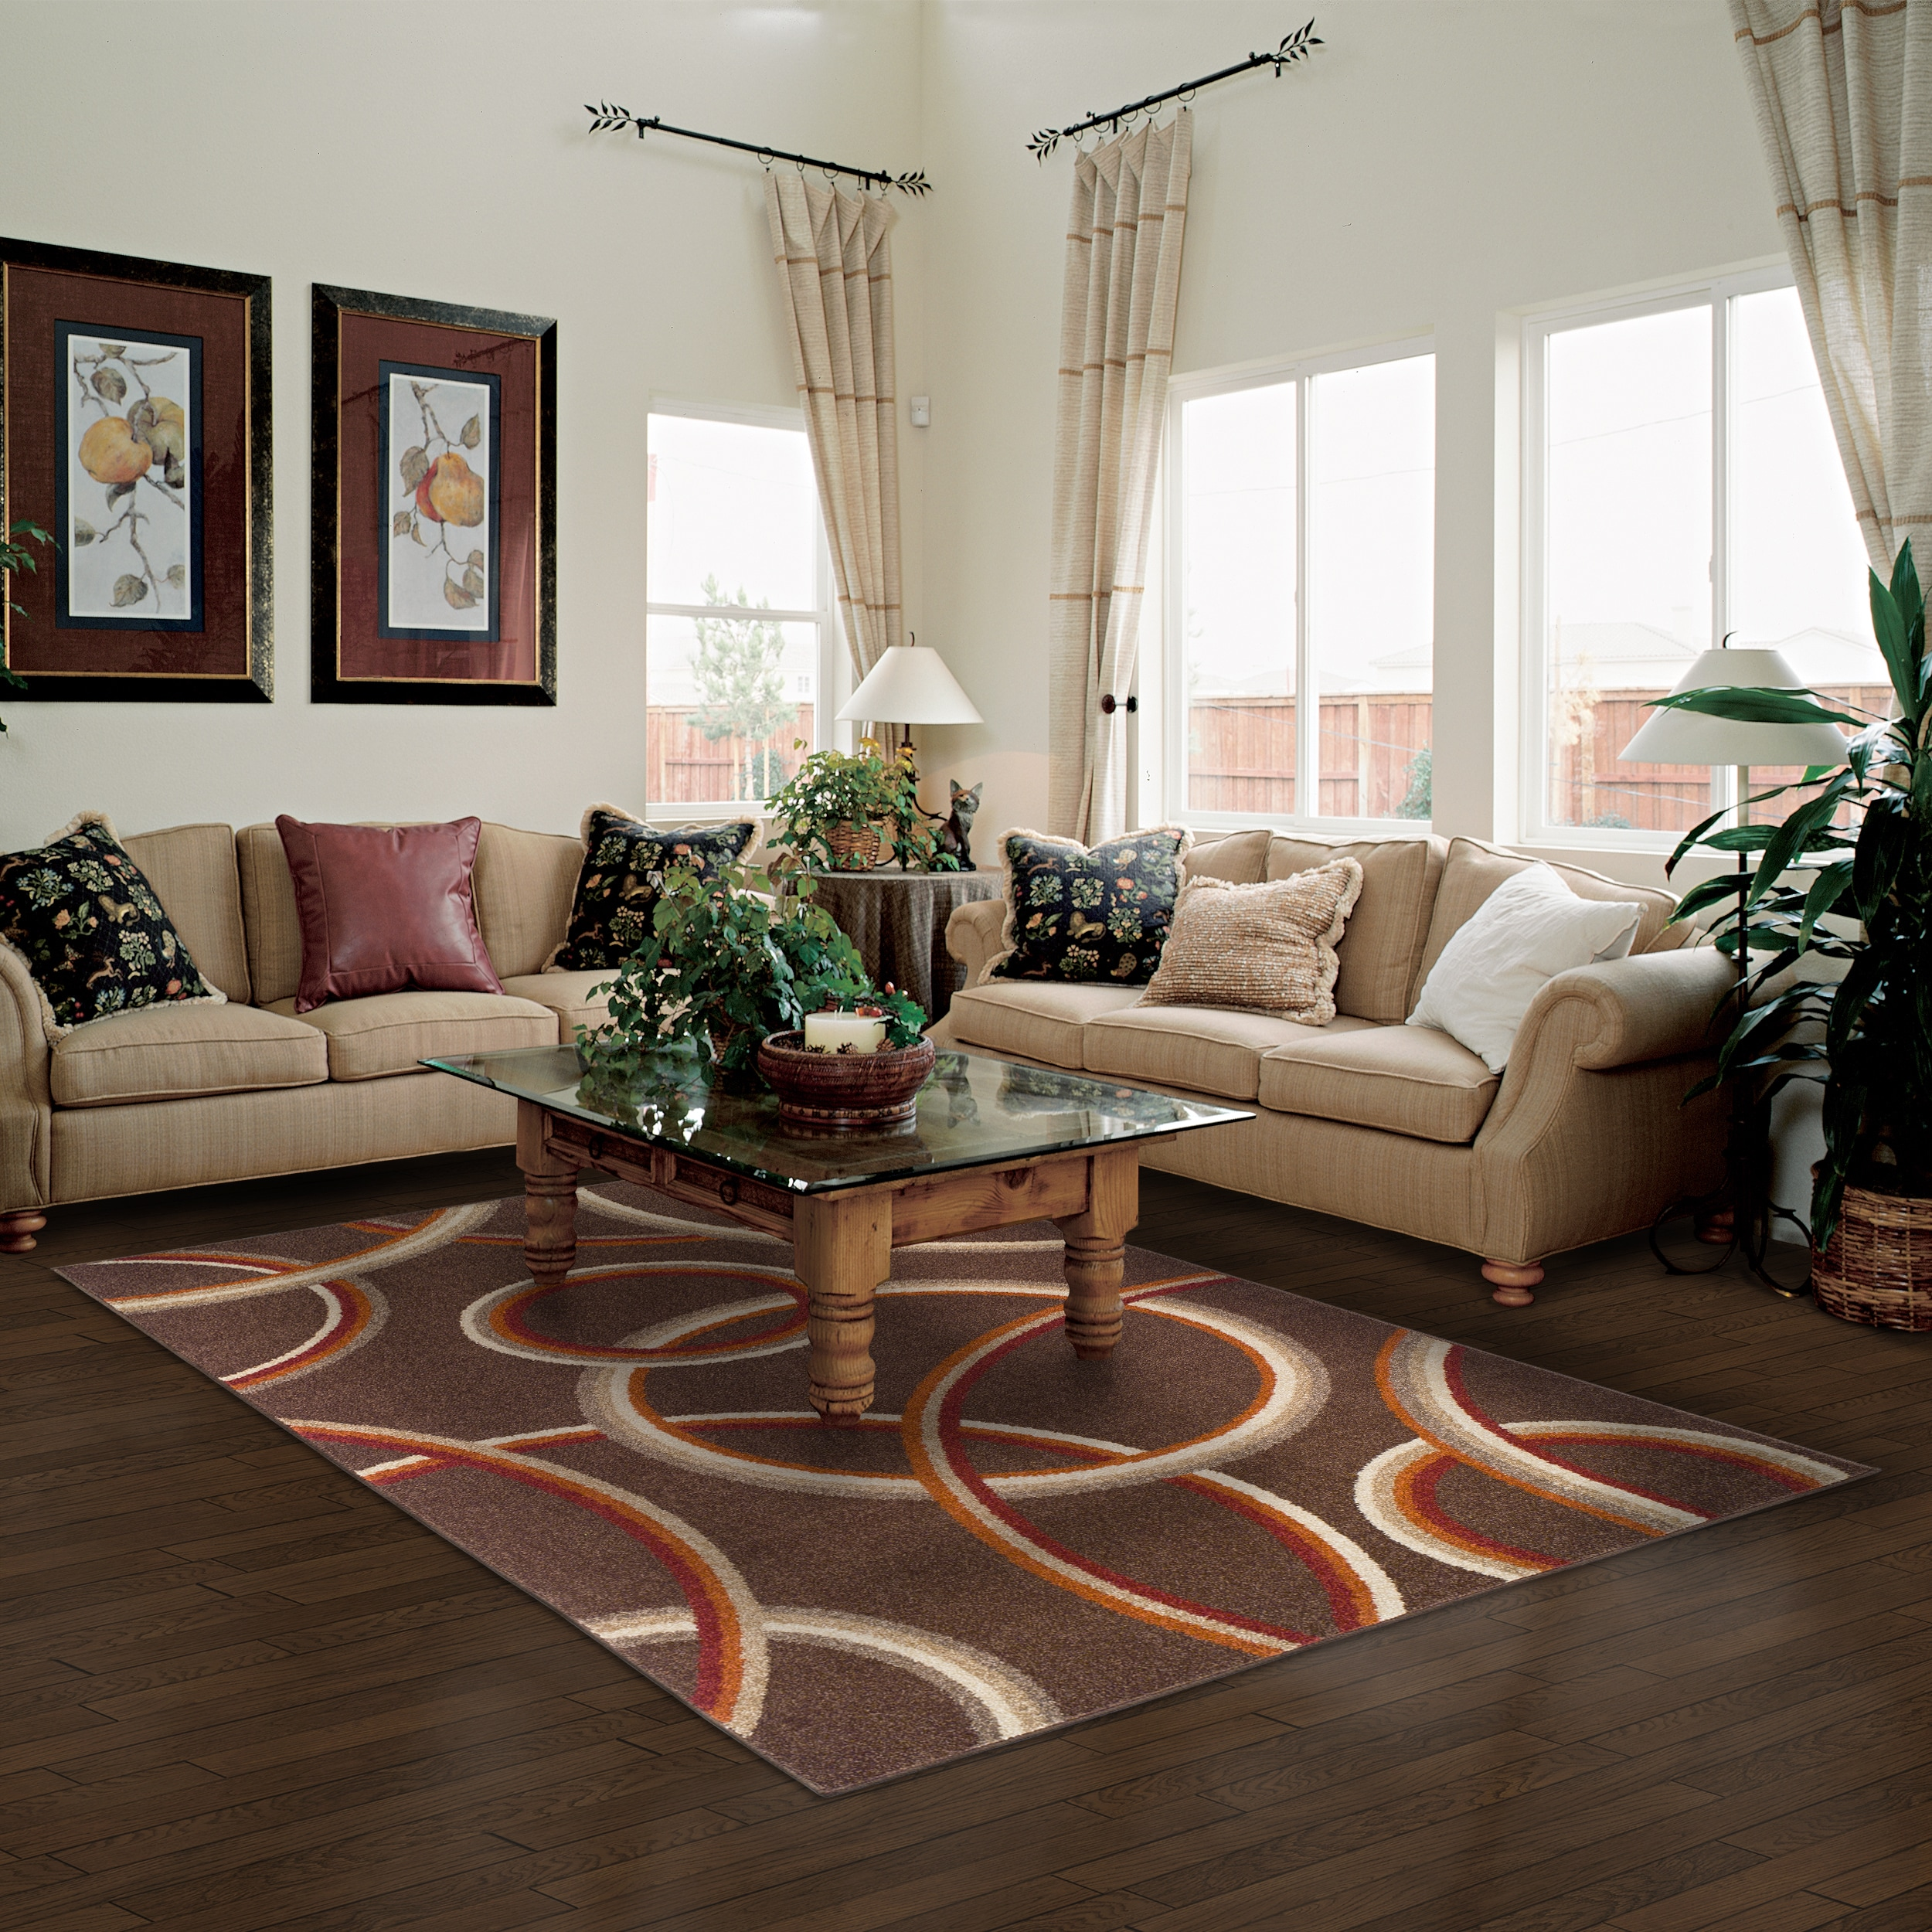 Shop superior modern meridian brown area rug 5 x 8 5 x 8 free shipping today overstock com 13176912